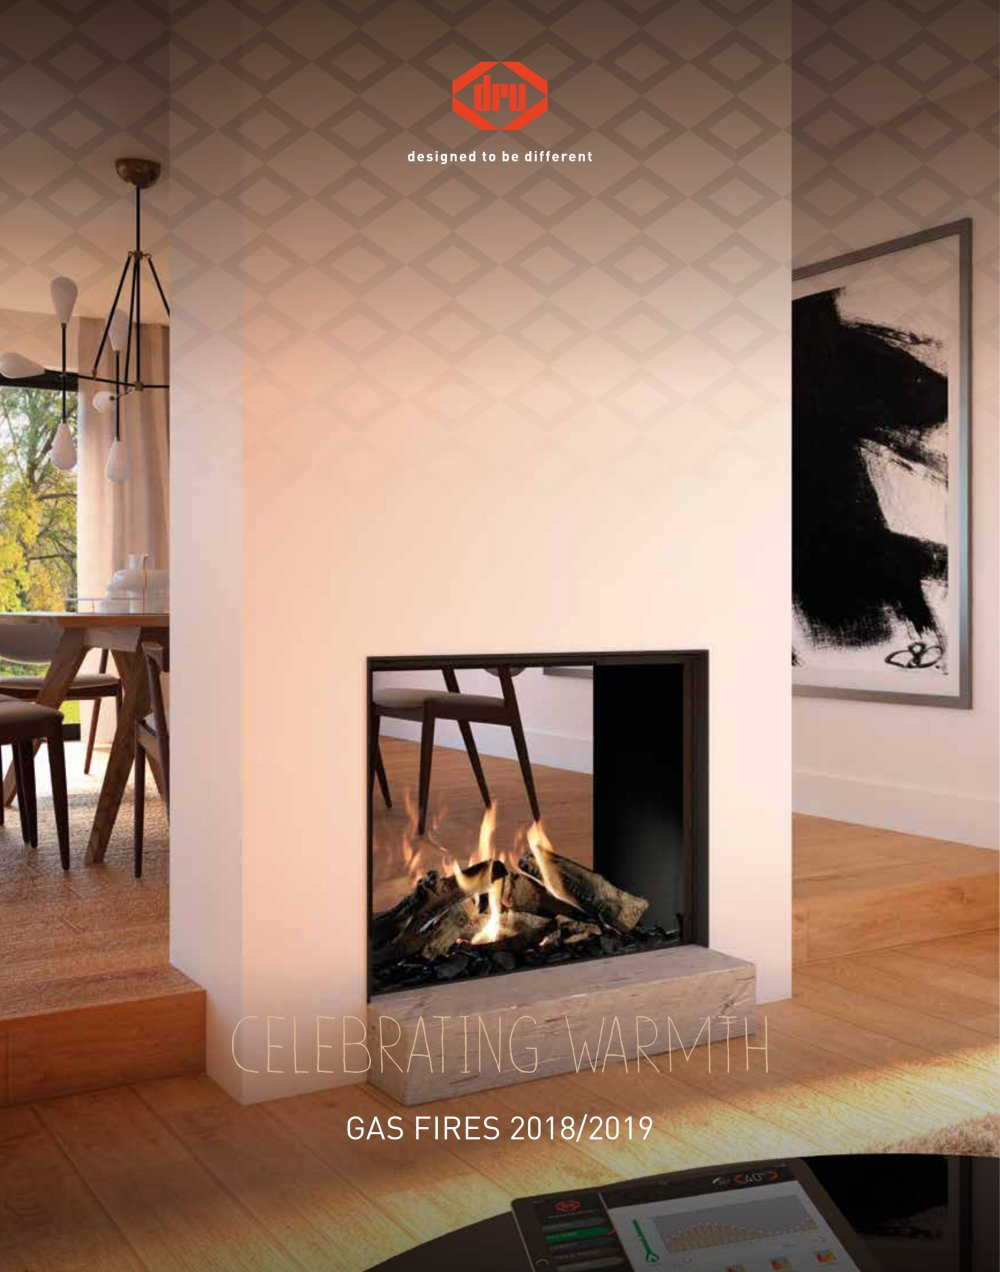 Spartherm Kamin Wartung Dru Spartherm The Fire Company Pdf Catalogs Documentation